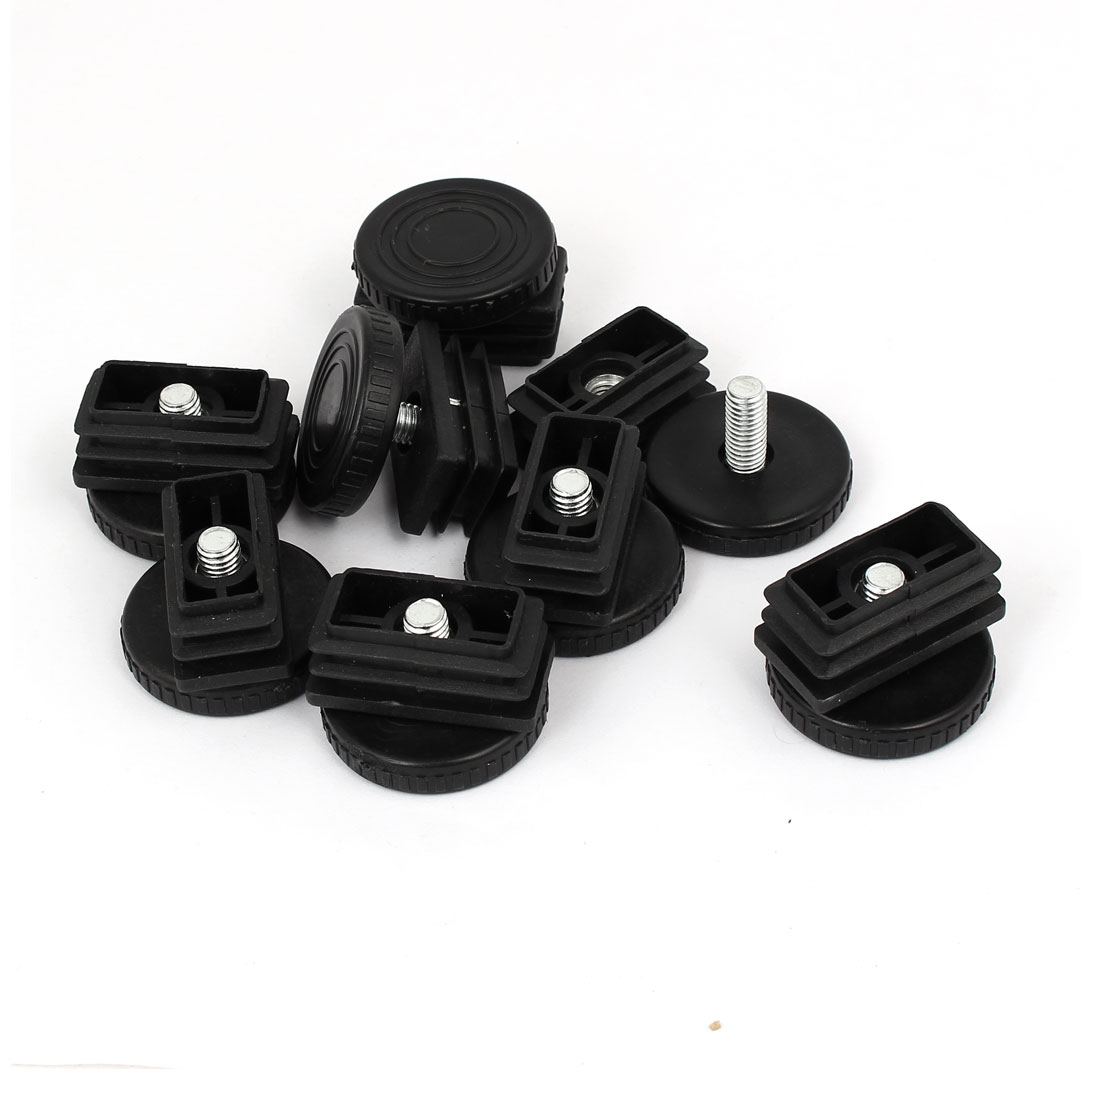 39mm x 19mm Thread Tube Insert Adjustable Leveling Foot 8 Sets for Desk Table